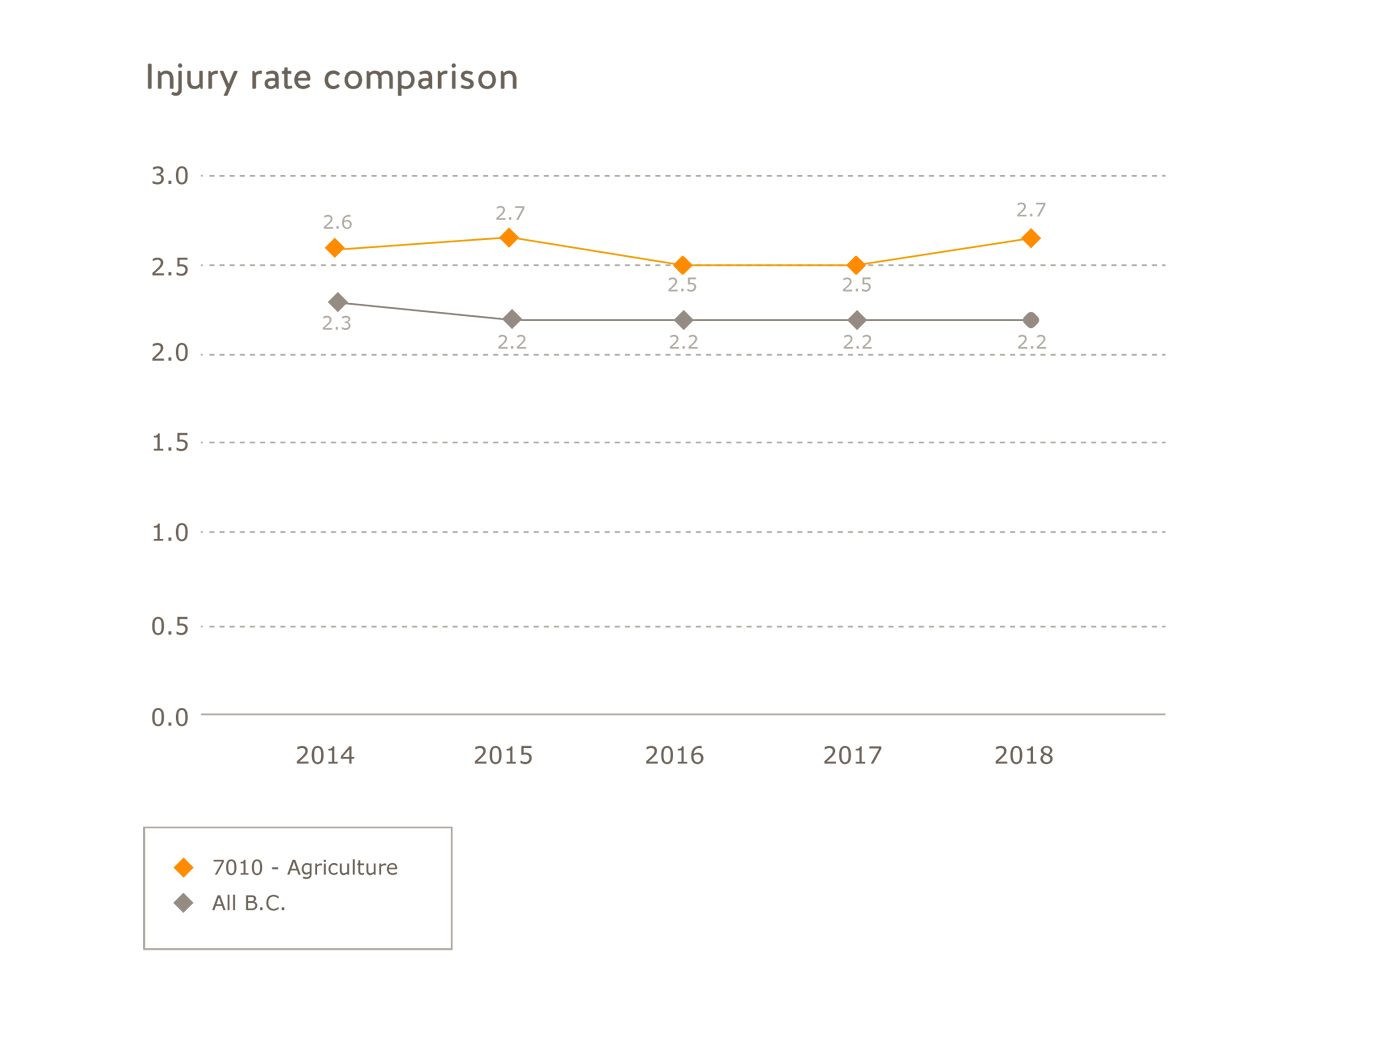 Agriculture injury rate comparison by sector. All B.C.: 2014=2.3; 2015=2.2; 2016=2.2; 2017=2.2, 2018=2.2. Agriculture: 2014=2.6; 2015=2.7; 2016=2.5; 2017=2.5; 2018=2.7.